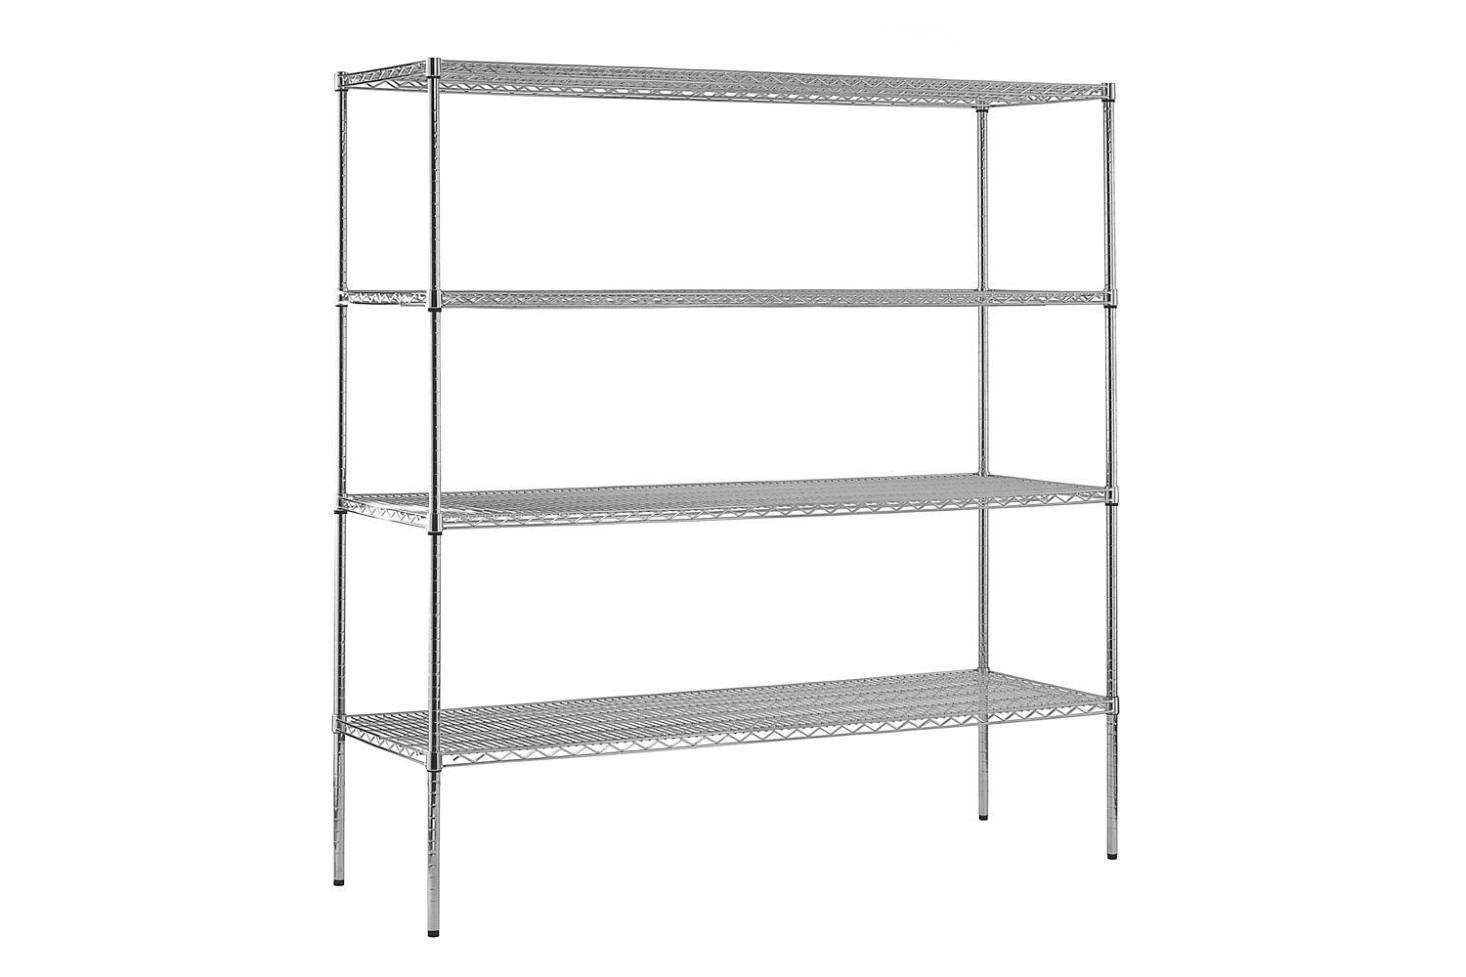 Garage Shelving Units 10 Easy Pieces Budget Garage Shelving Gardenista